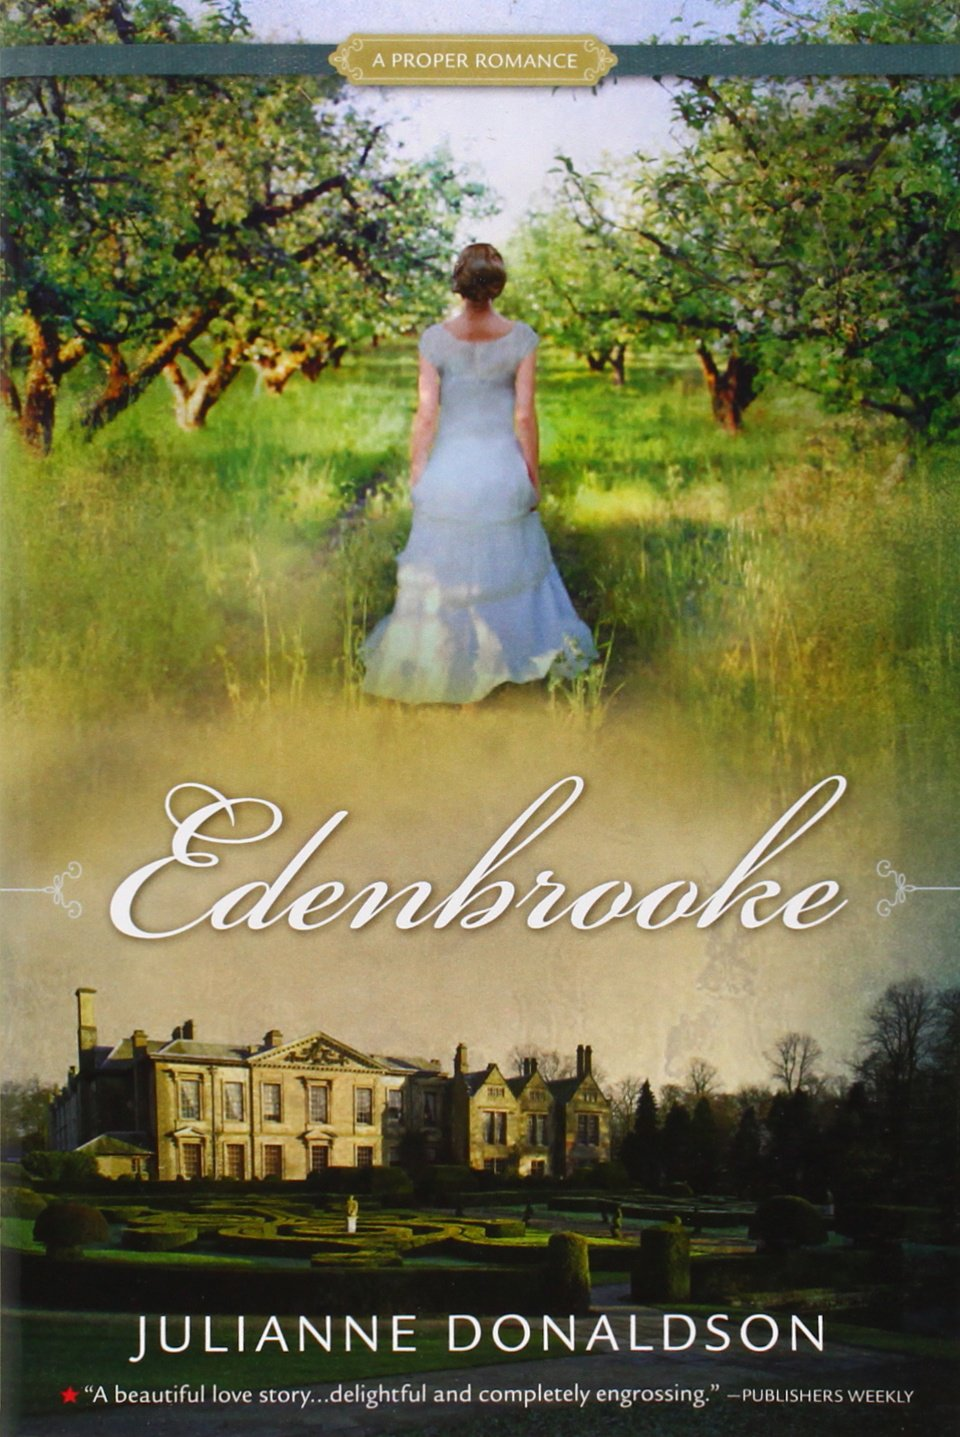 BLACKMORE JULIANNE DONALDSON EBOOK DOWNLOAD